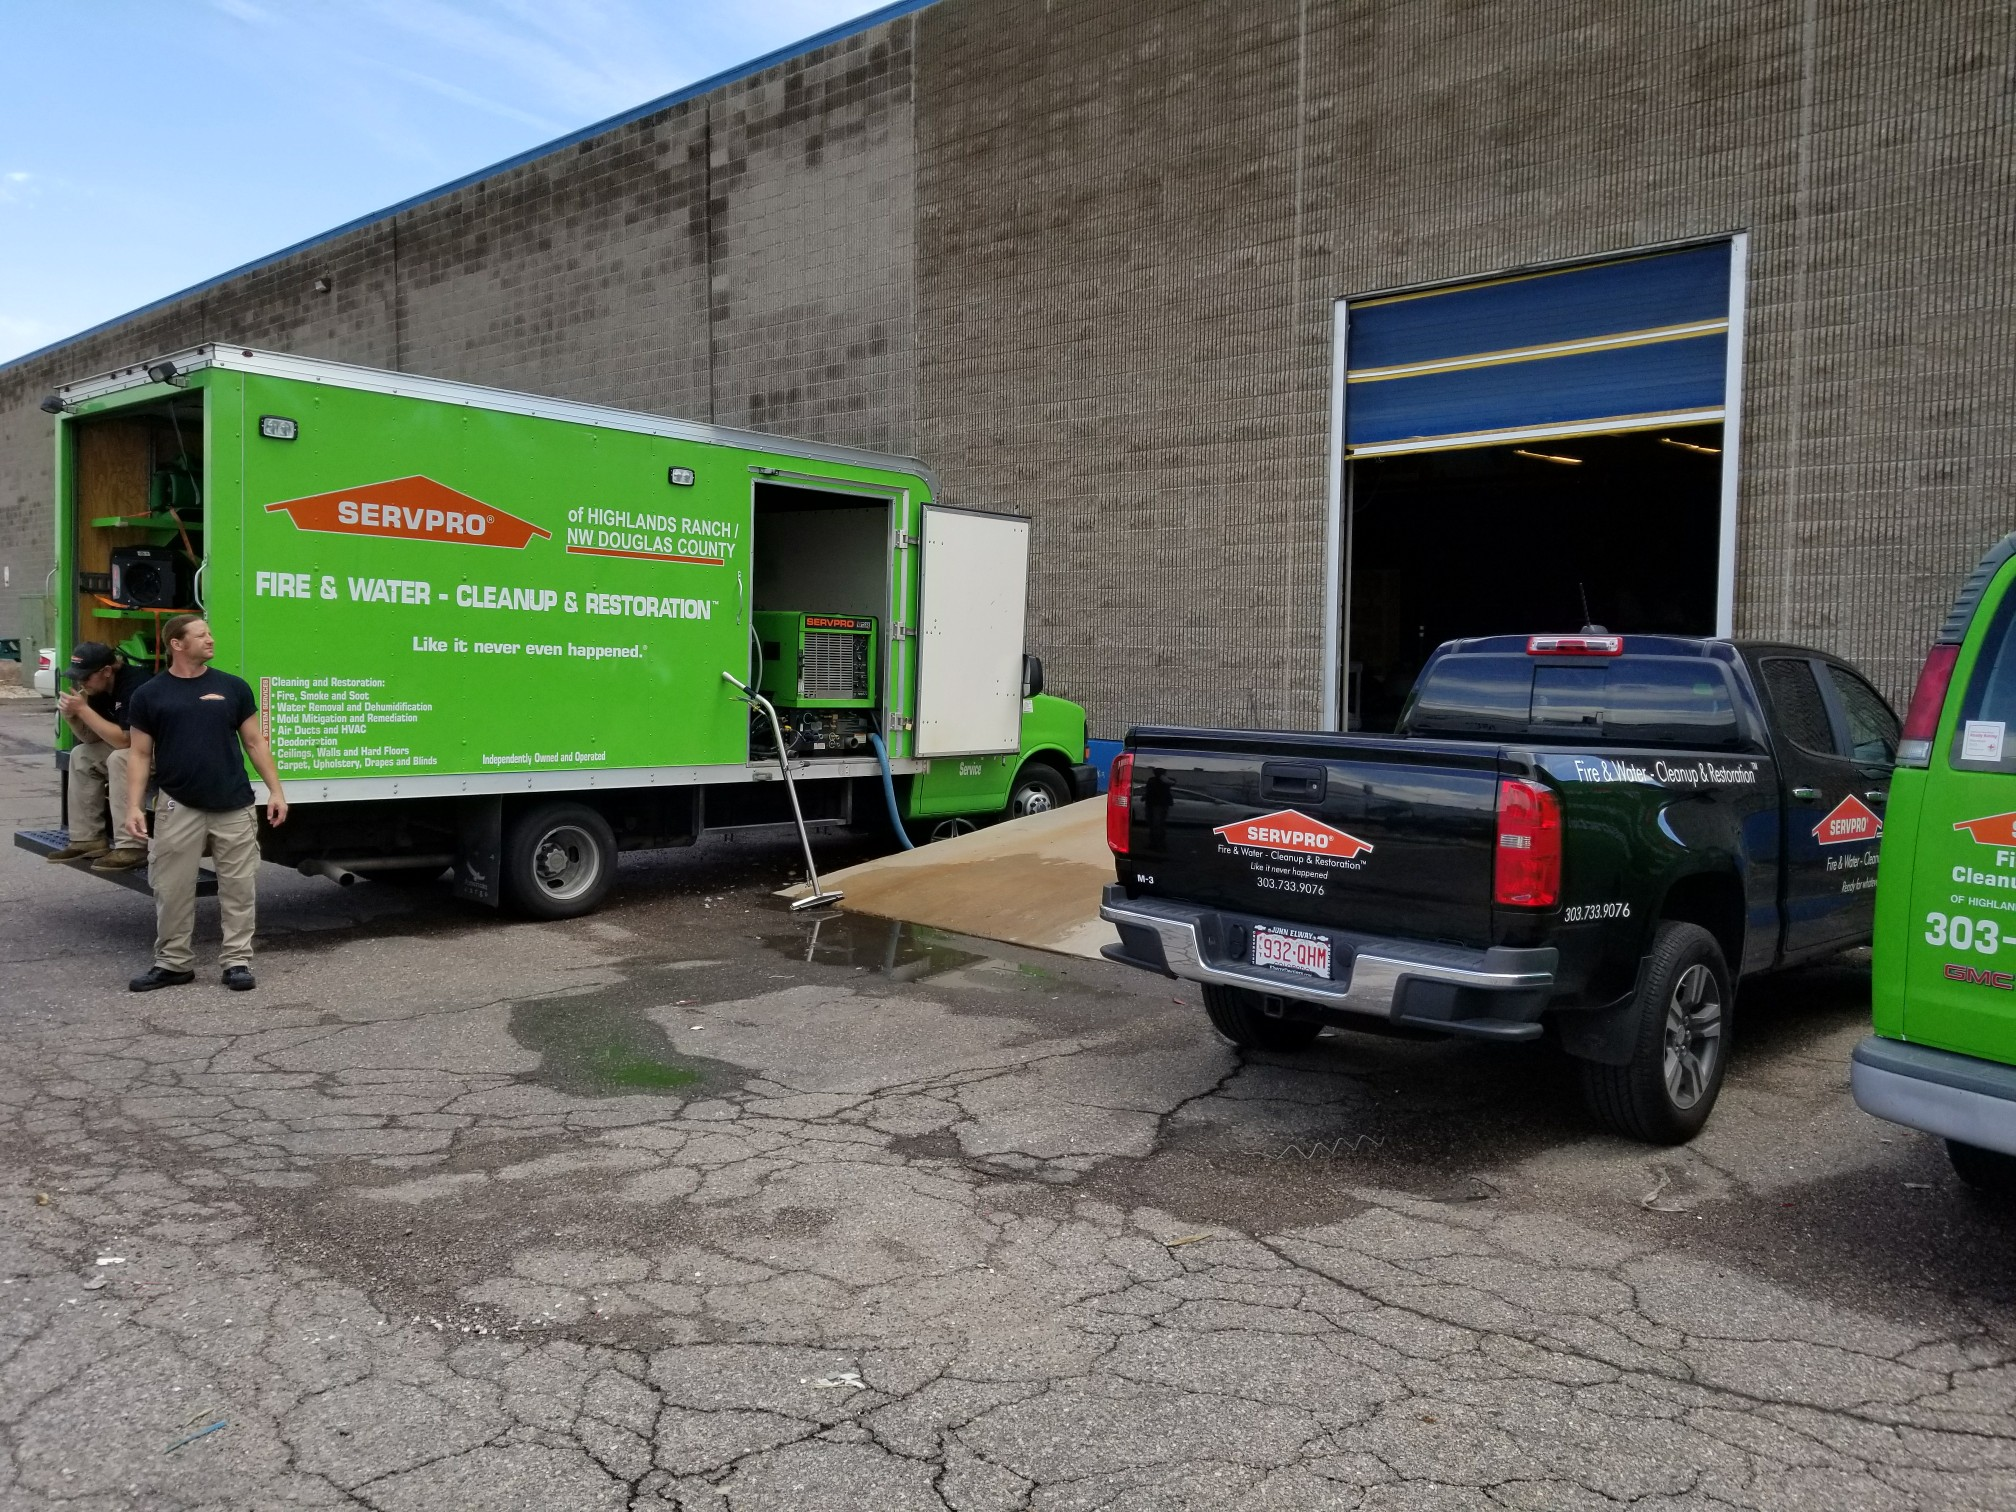 SERVPRO of Highlands Ranch/ NW Douglas County image 5